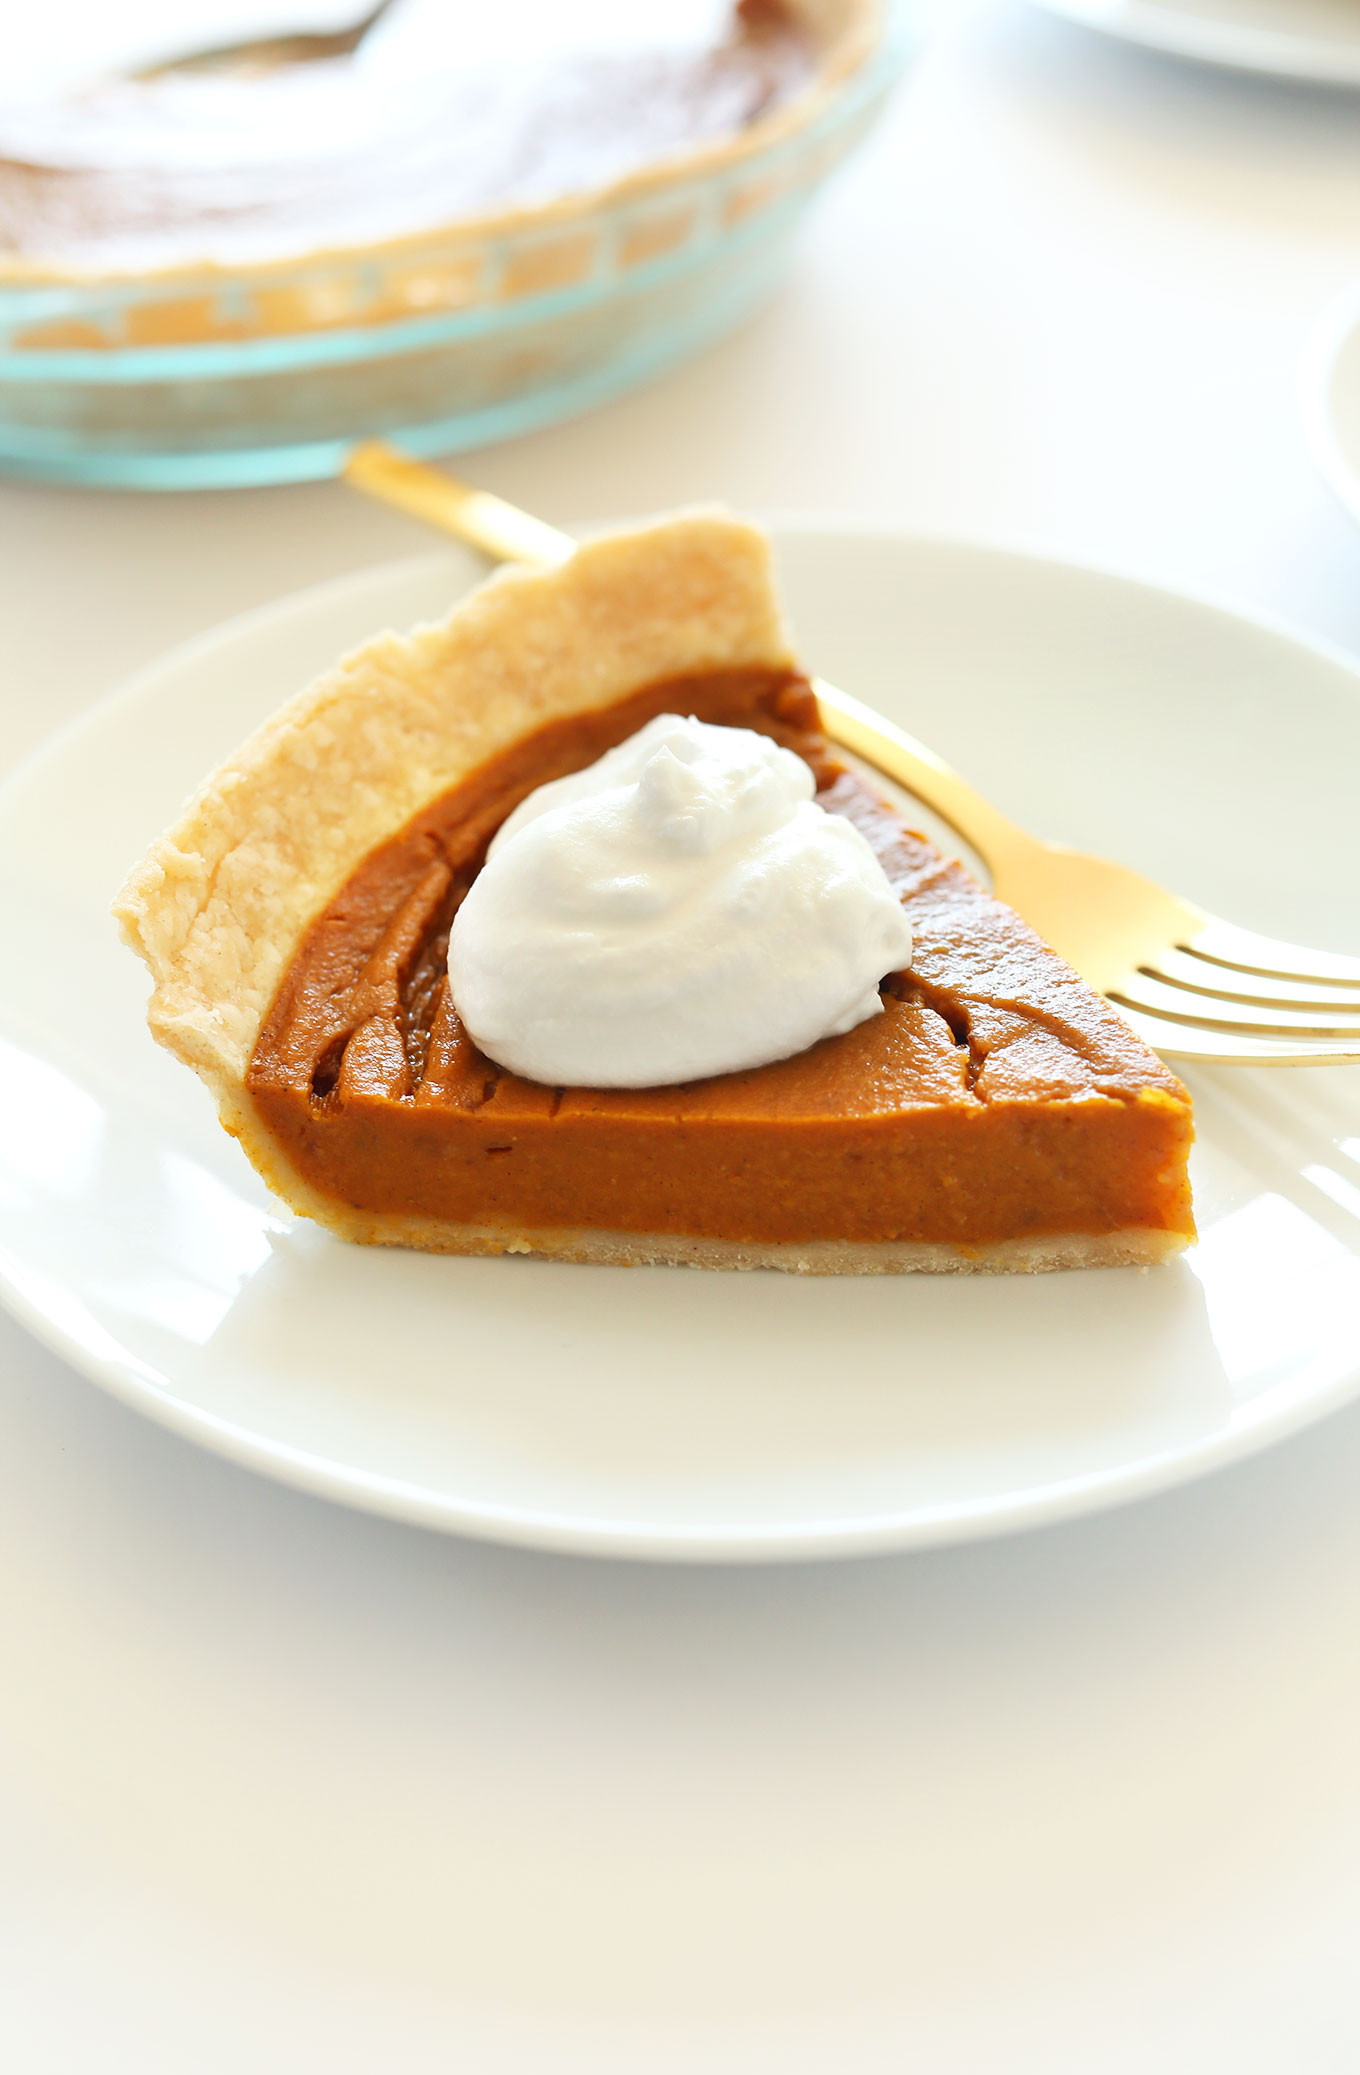 Pumpkin Pie Ingredients  7 Delicious Pie Recipes for Your Gluten Free Holiday Guests